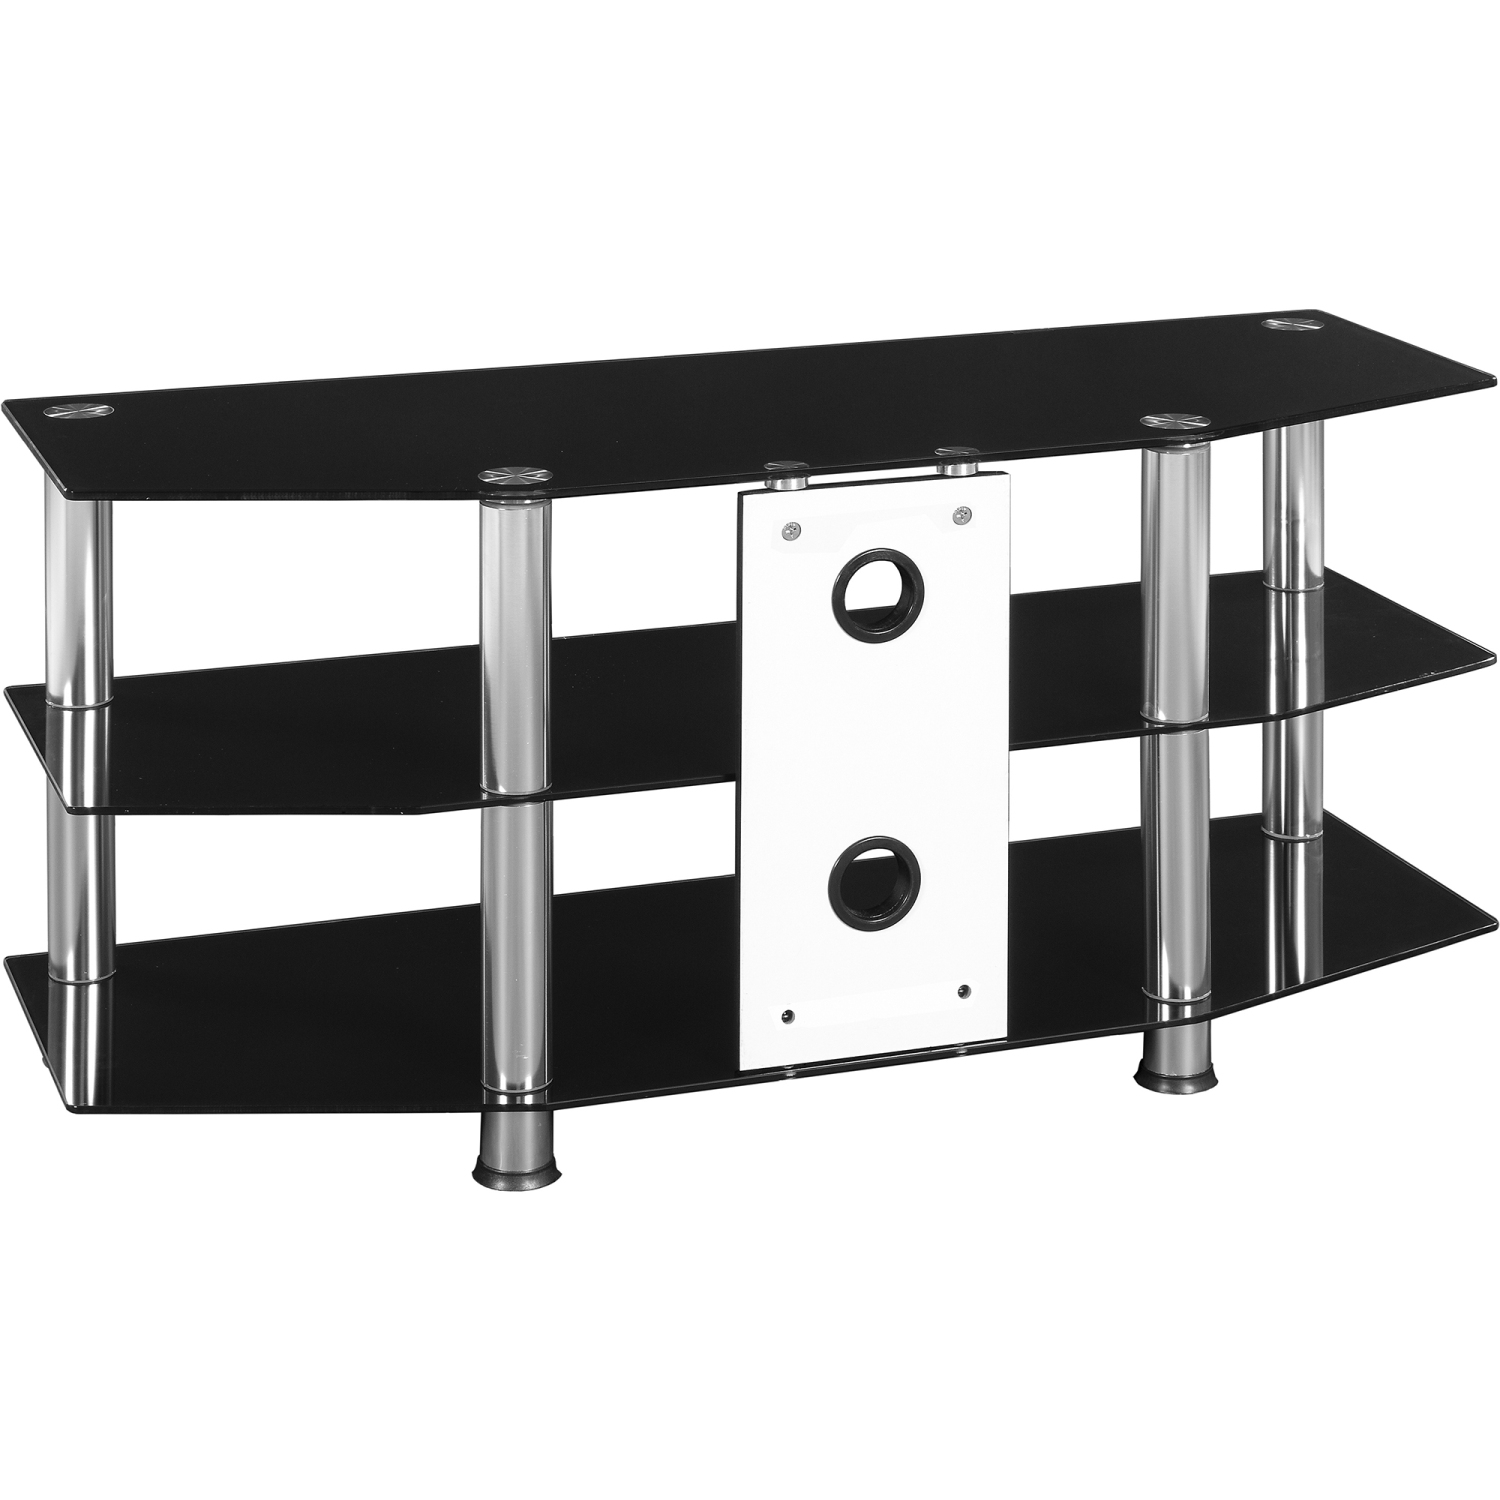 stilista tv rack tisch fernsehtisch hifi m bel schwarz glas schwarzglas ebay. Black Bedroom Furniture Sets. Home Design Ideas